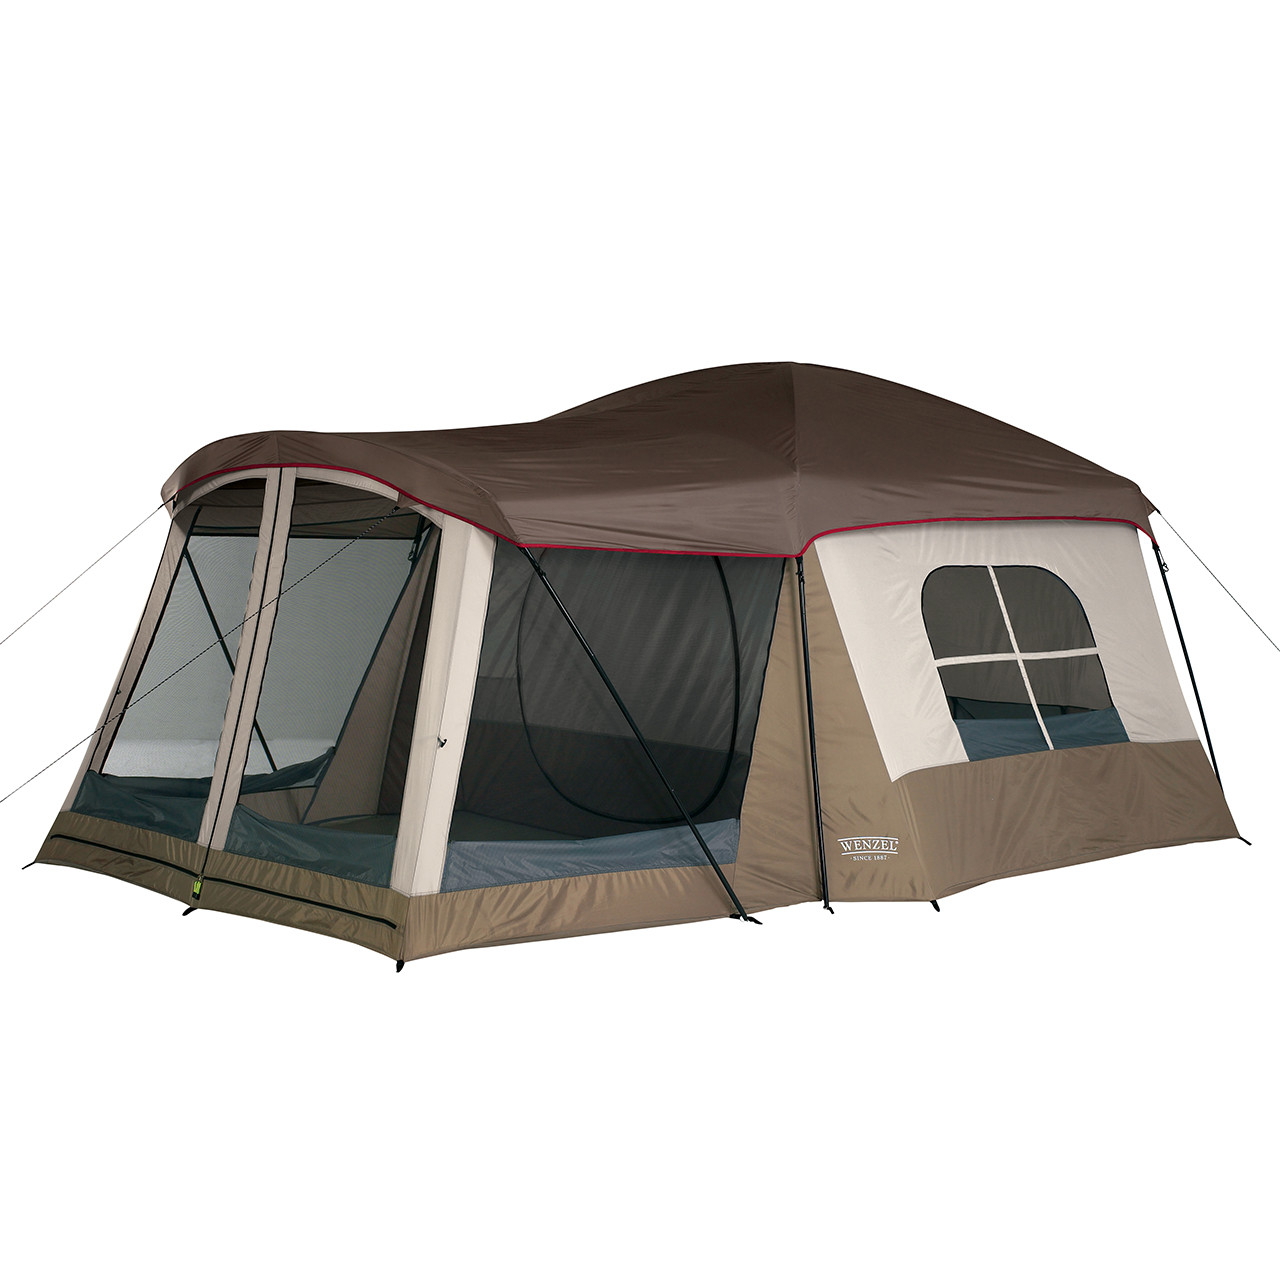 Wenzel Klondike 8 tent, green and tan, setup with the rain fly on and the vestibule screen windows open and the main tent screen window open